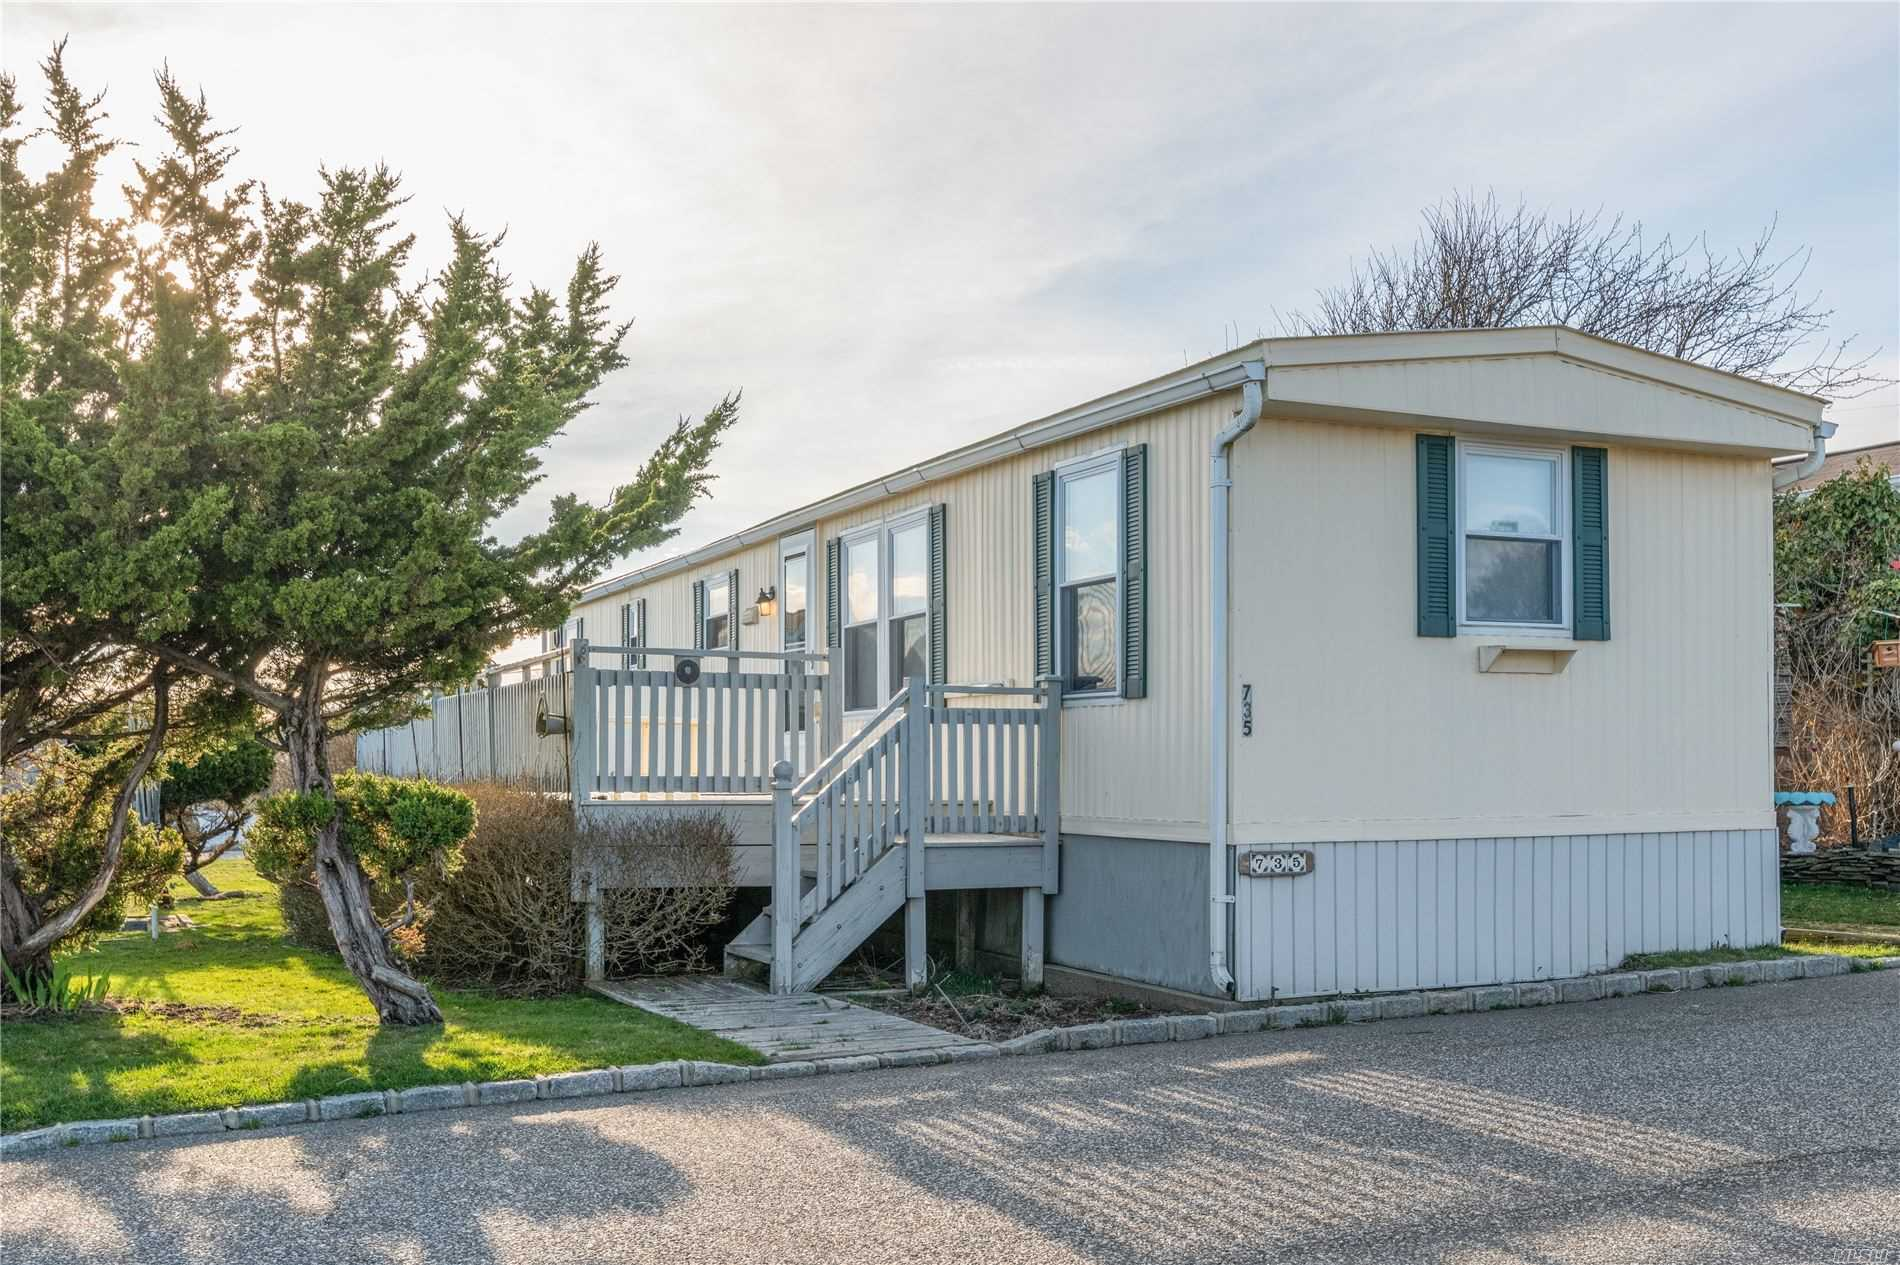 Property for sale at 100 Deforest Road # 735, Montauk NY 11954, Montauk,  New York 11954